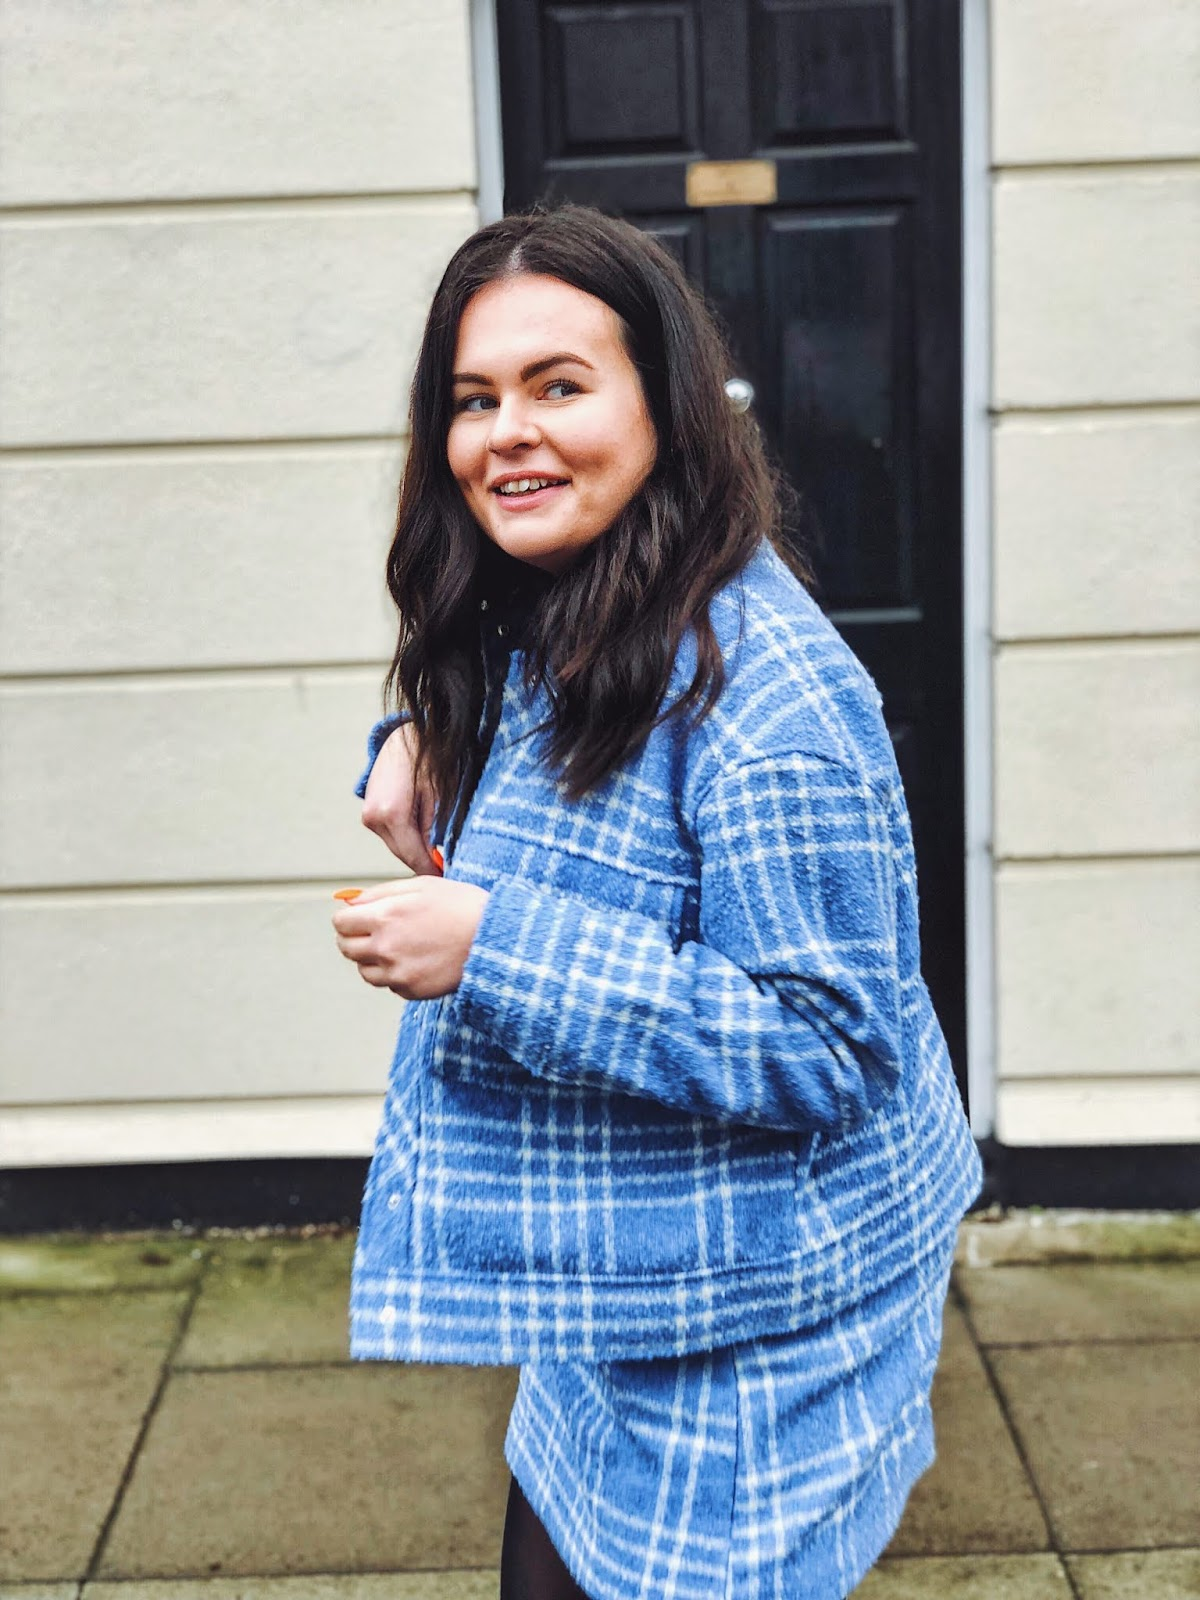 Getting Focused This January, monki co-rd, monki asos, monki boucle, mental health 2019, mental health blogger, influencers talking mental health, how to deal with depression, depression in your 20s